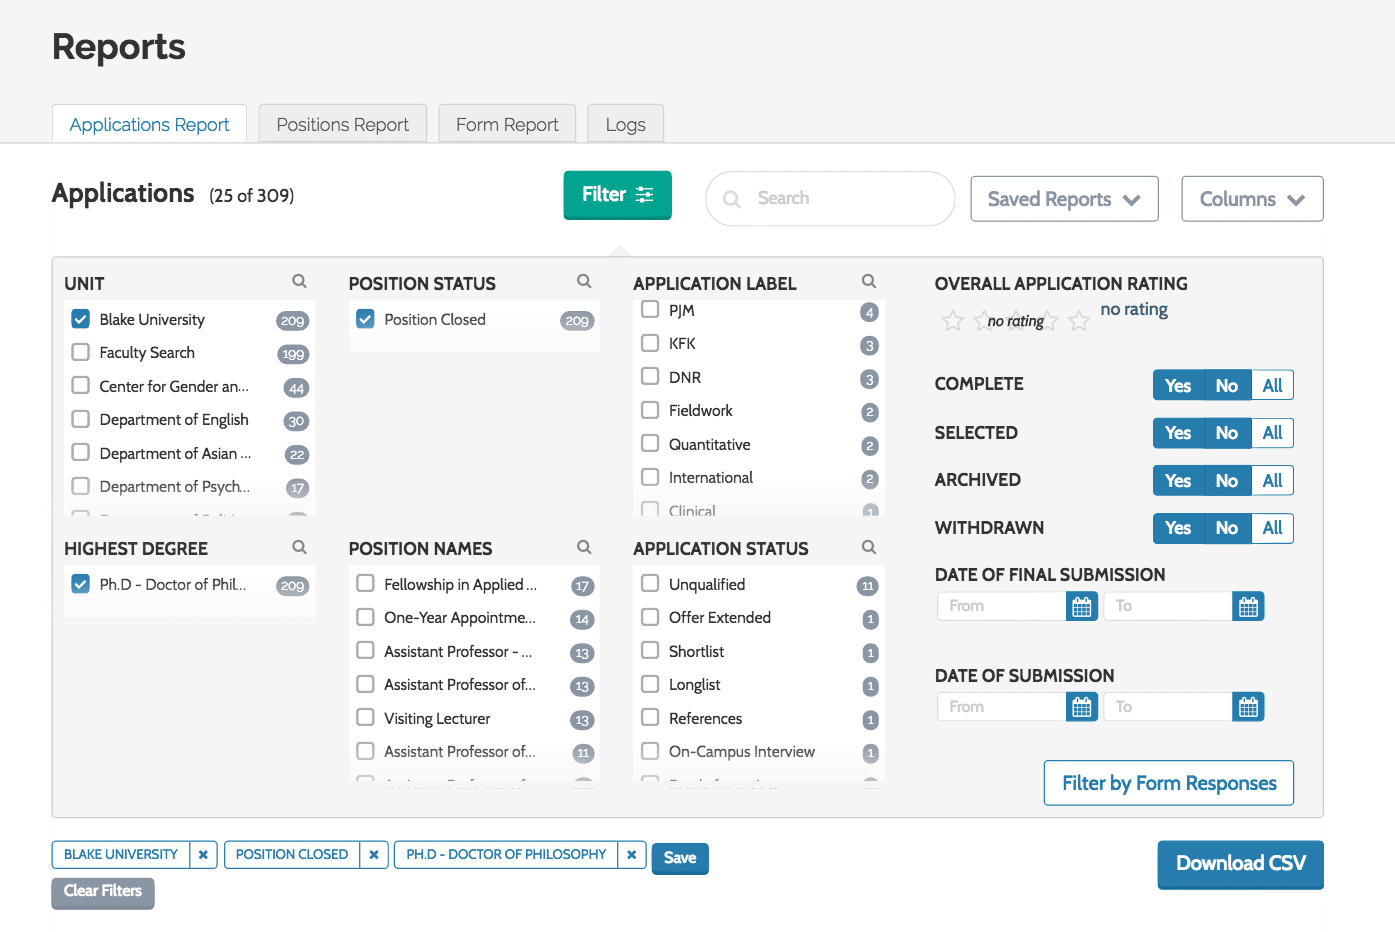 Improvements to reporting in Interfolio's ByCommittee